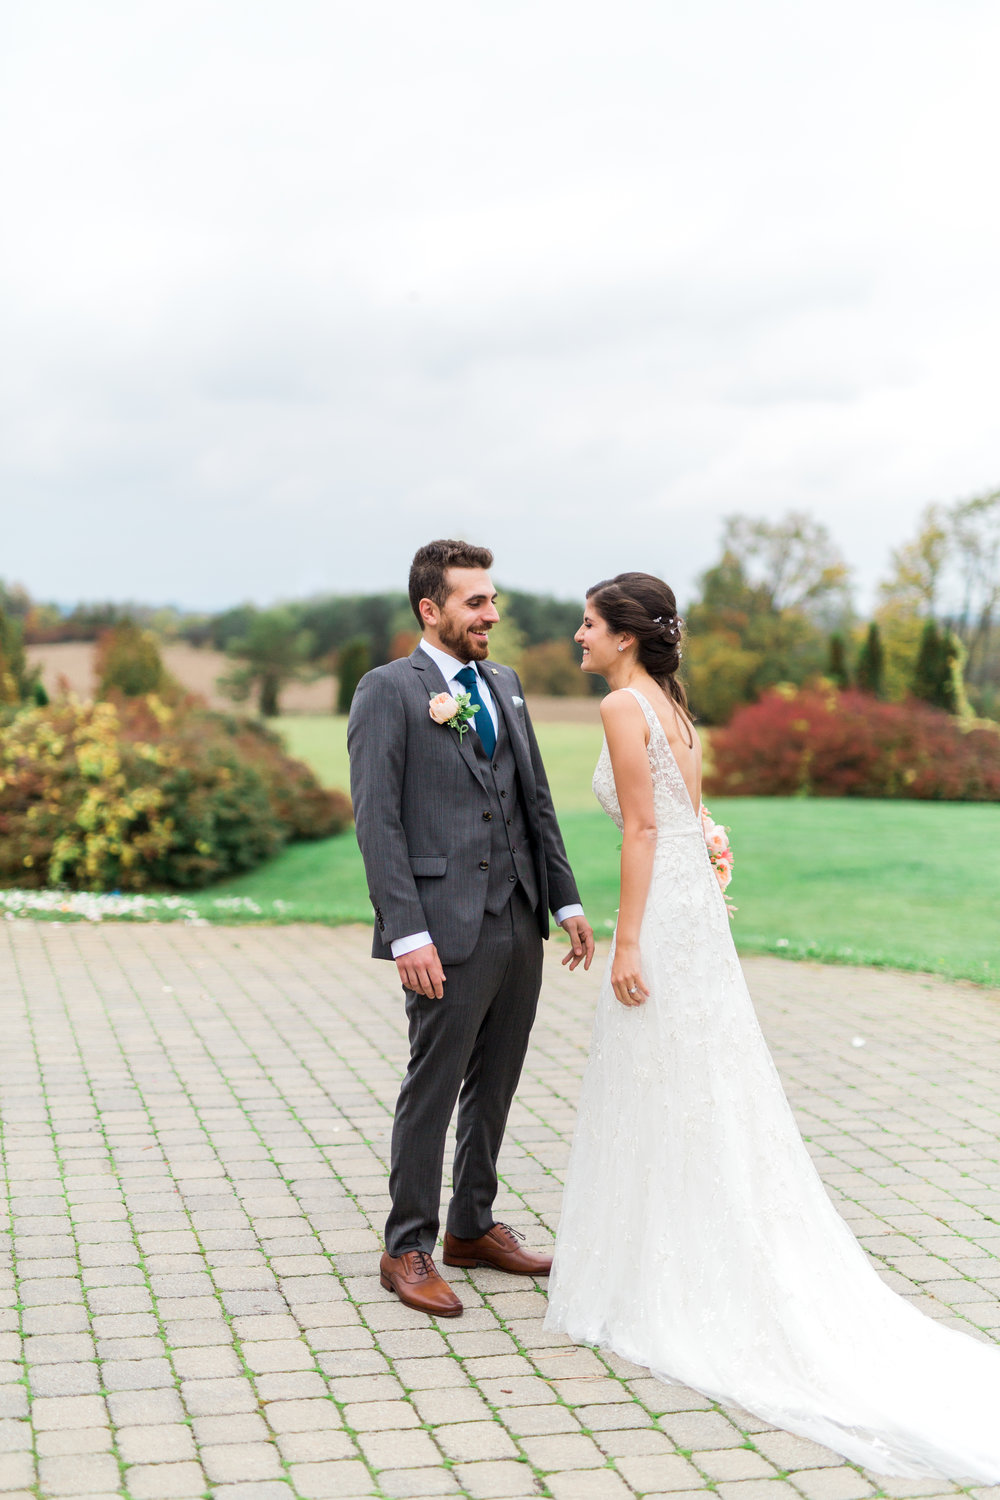 Amir-Golbazi-Danielle-Giroux-Photography_Toronto-Wedding_Cedarwood_Rachel-Paul_242.jpg